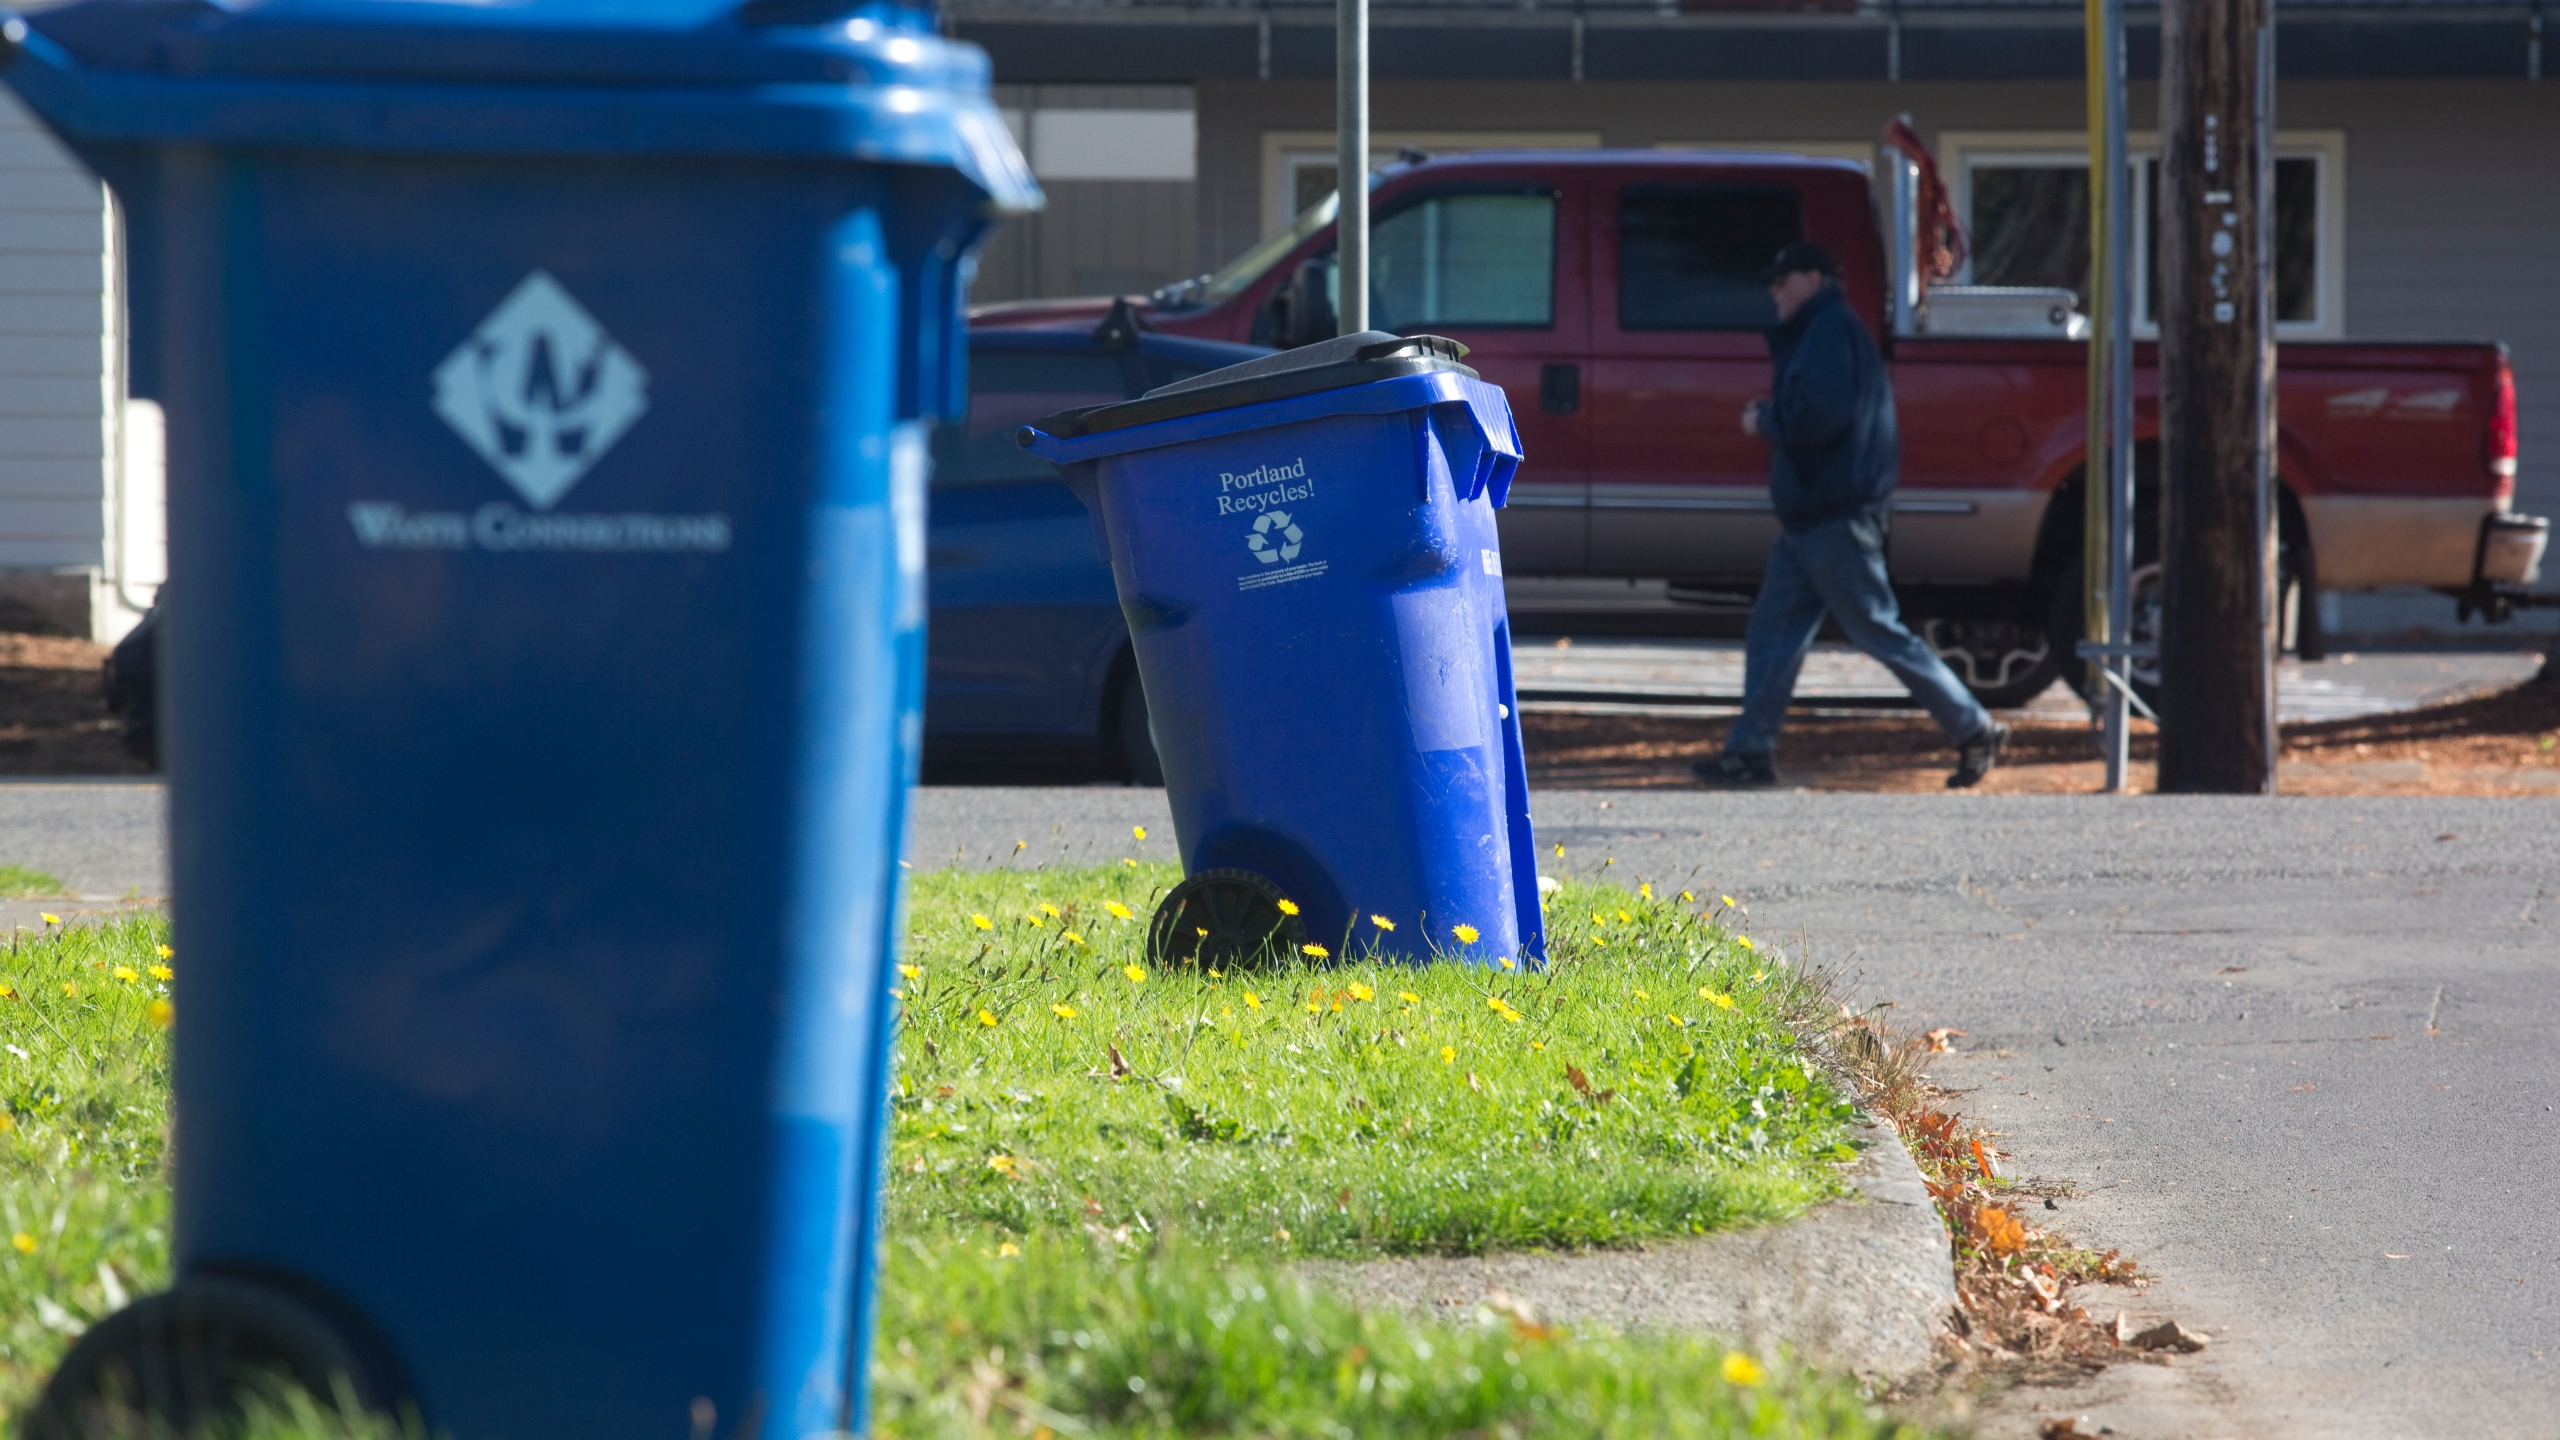 Blue recycling bins are seen in a neighborhood on Oct. 30, 2017, in Portland, Oregon. (Credit: Natalie Behring/Getty Images)